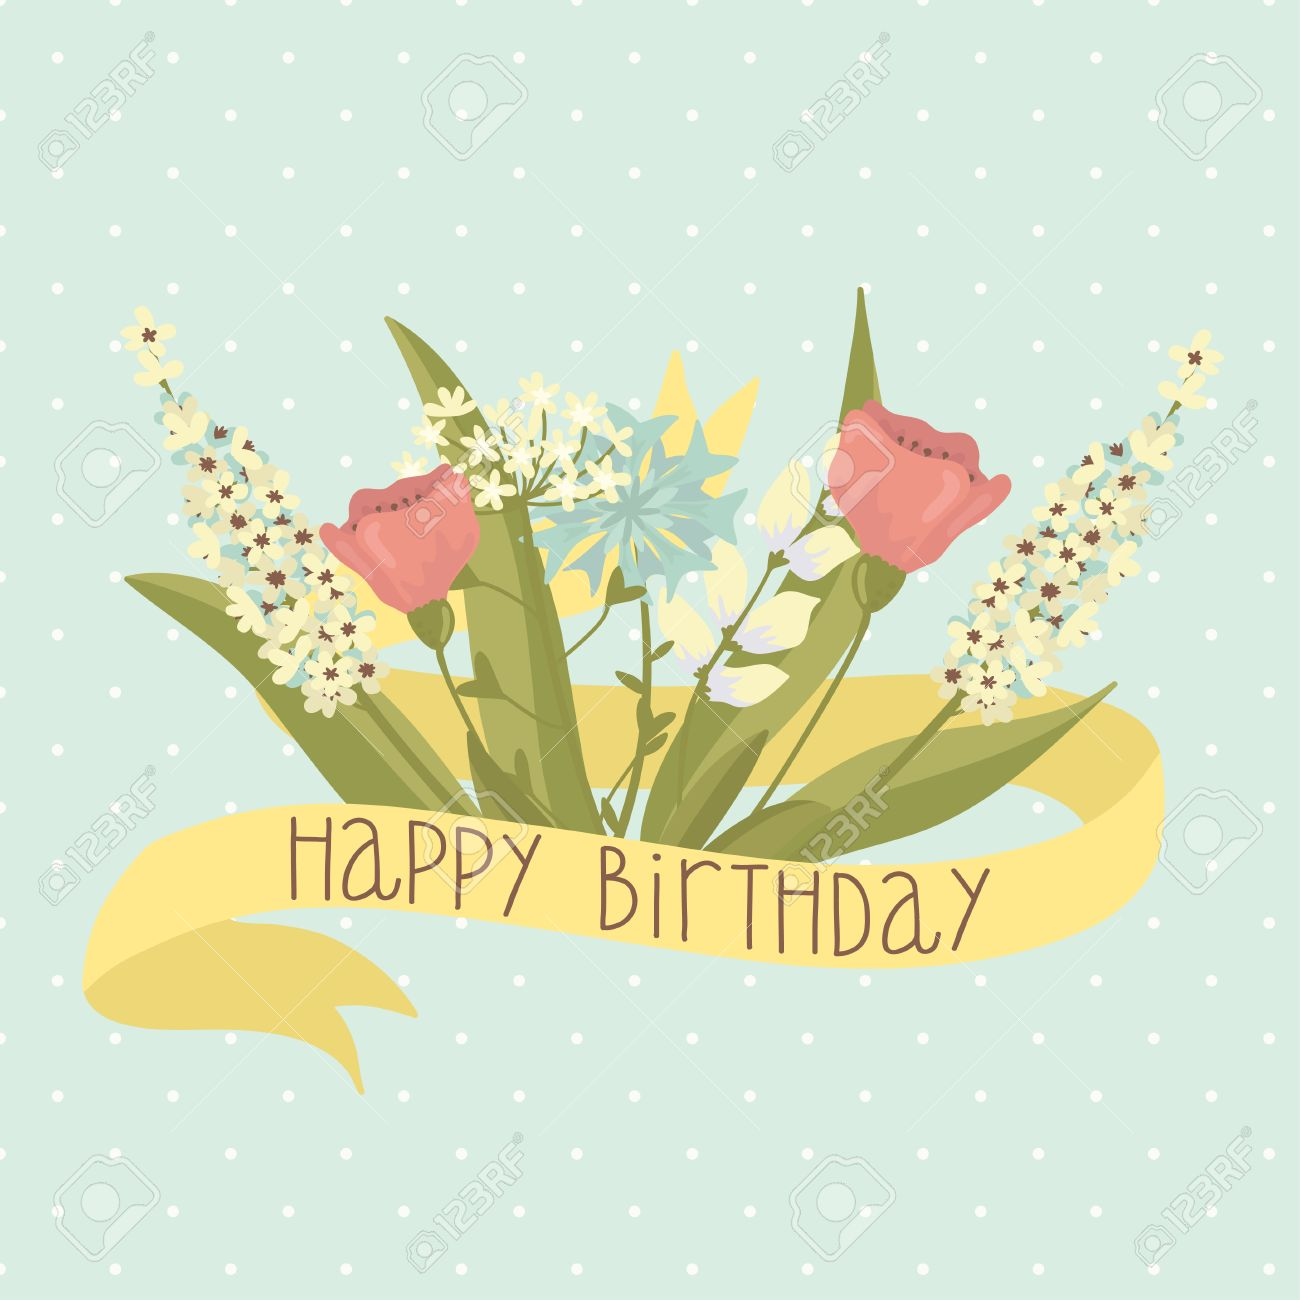 Beautiful happy birthday greeting card with flowers royalty free beautiful happy birthday greeting card with flowers stock vector 28465913 izmirmasajfo